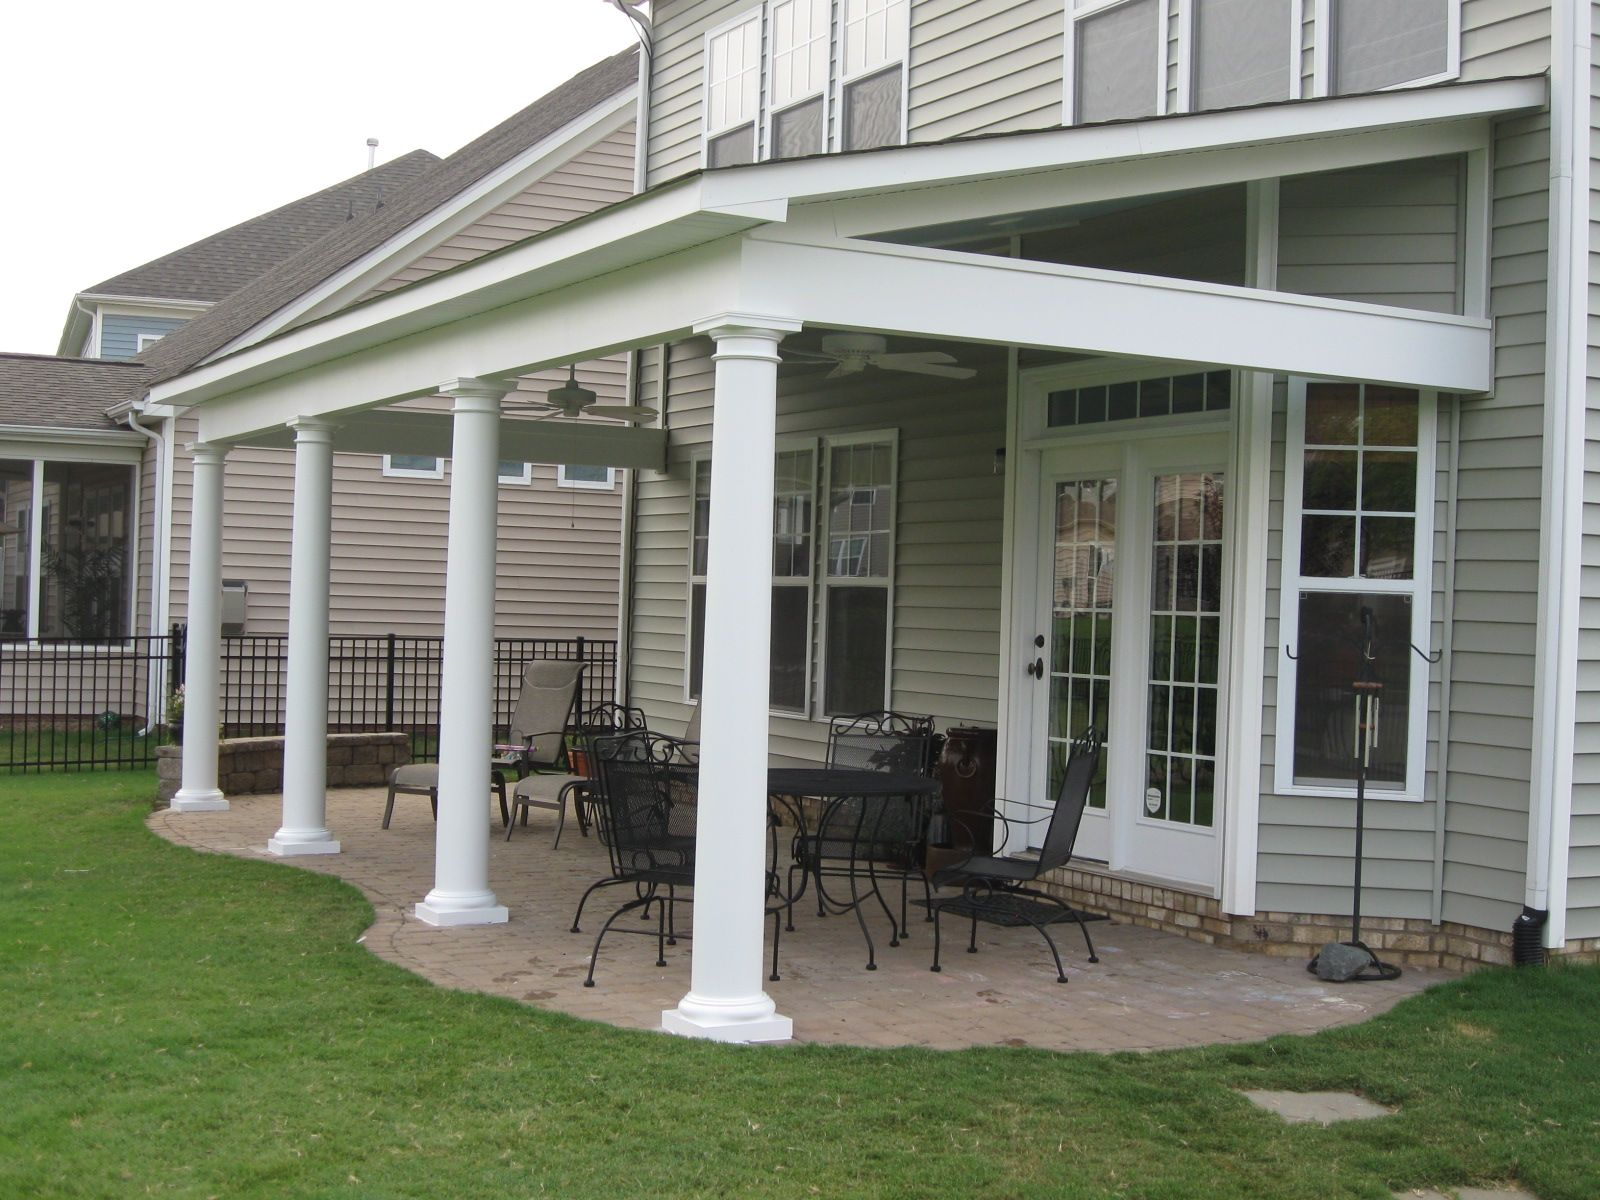 Back porch roof ideas - 17 Best Images About Covered Porches On Pinterest Porch Roof Steel Beams And Covered Patios